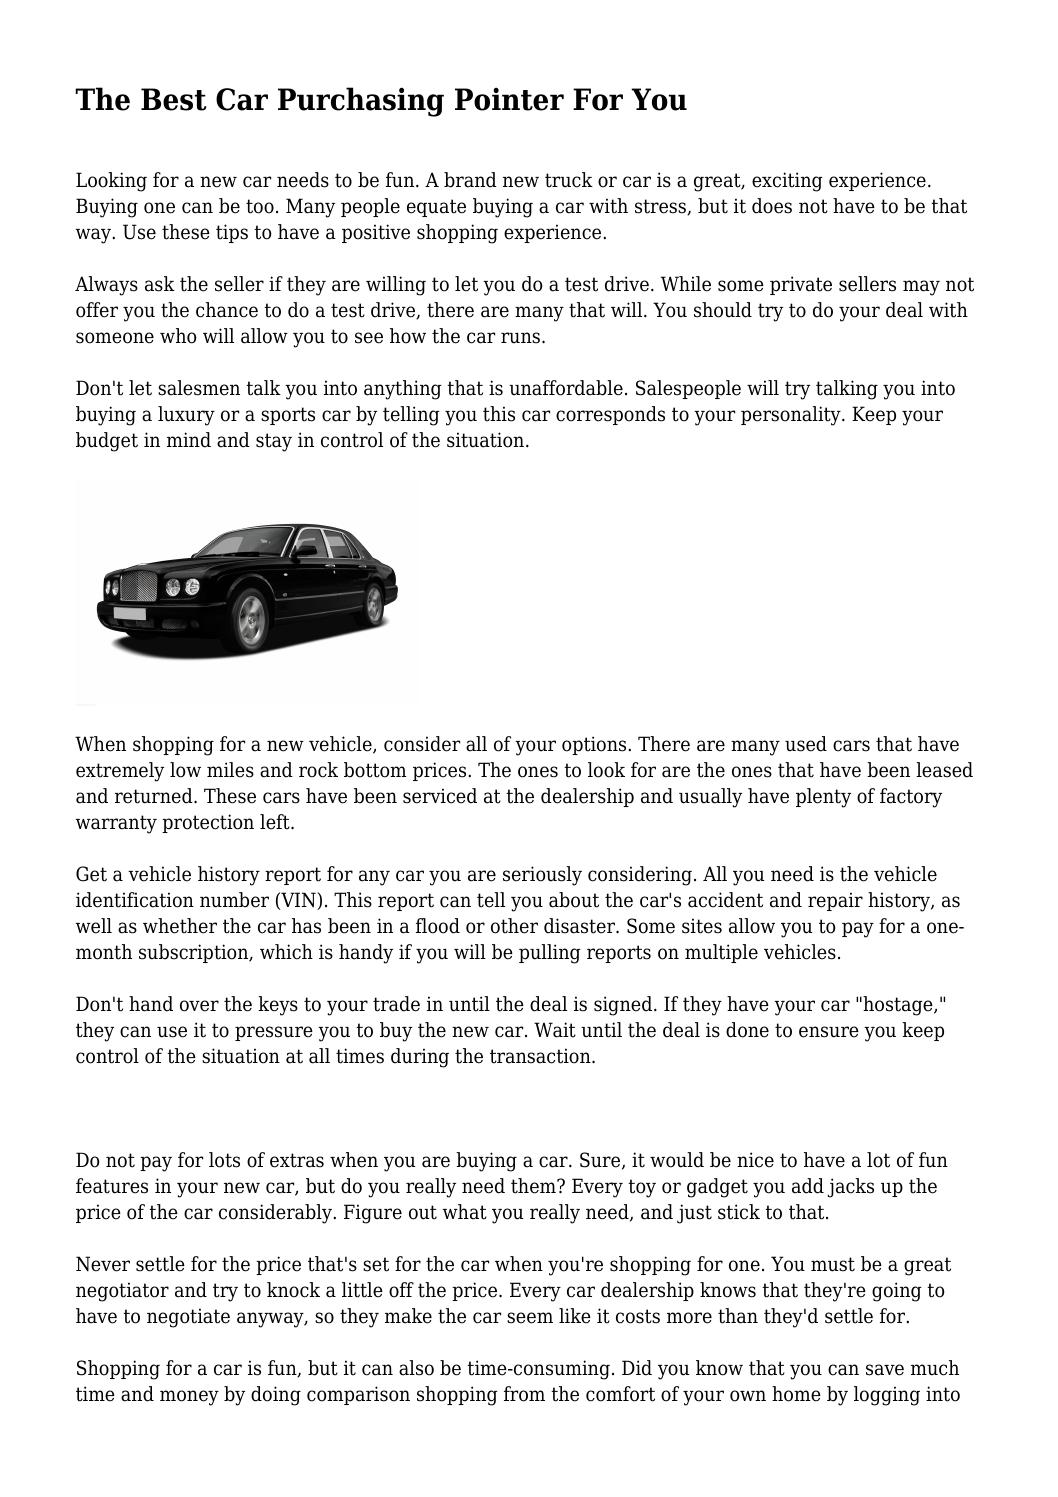 the best car purchasing pointer for you by puffymasquerade49 - issuu